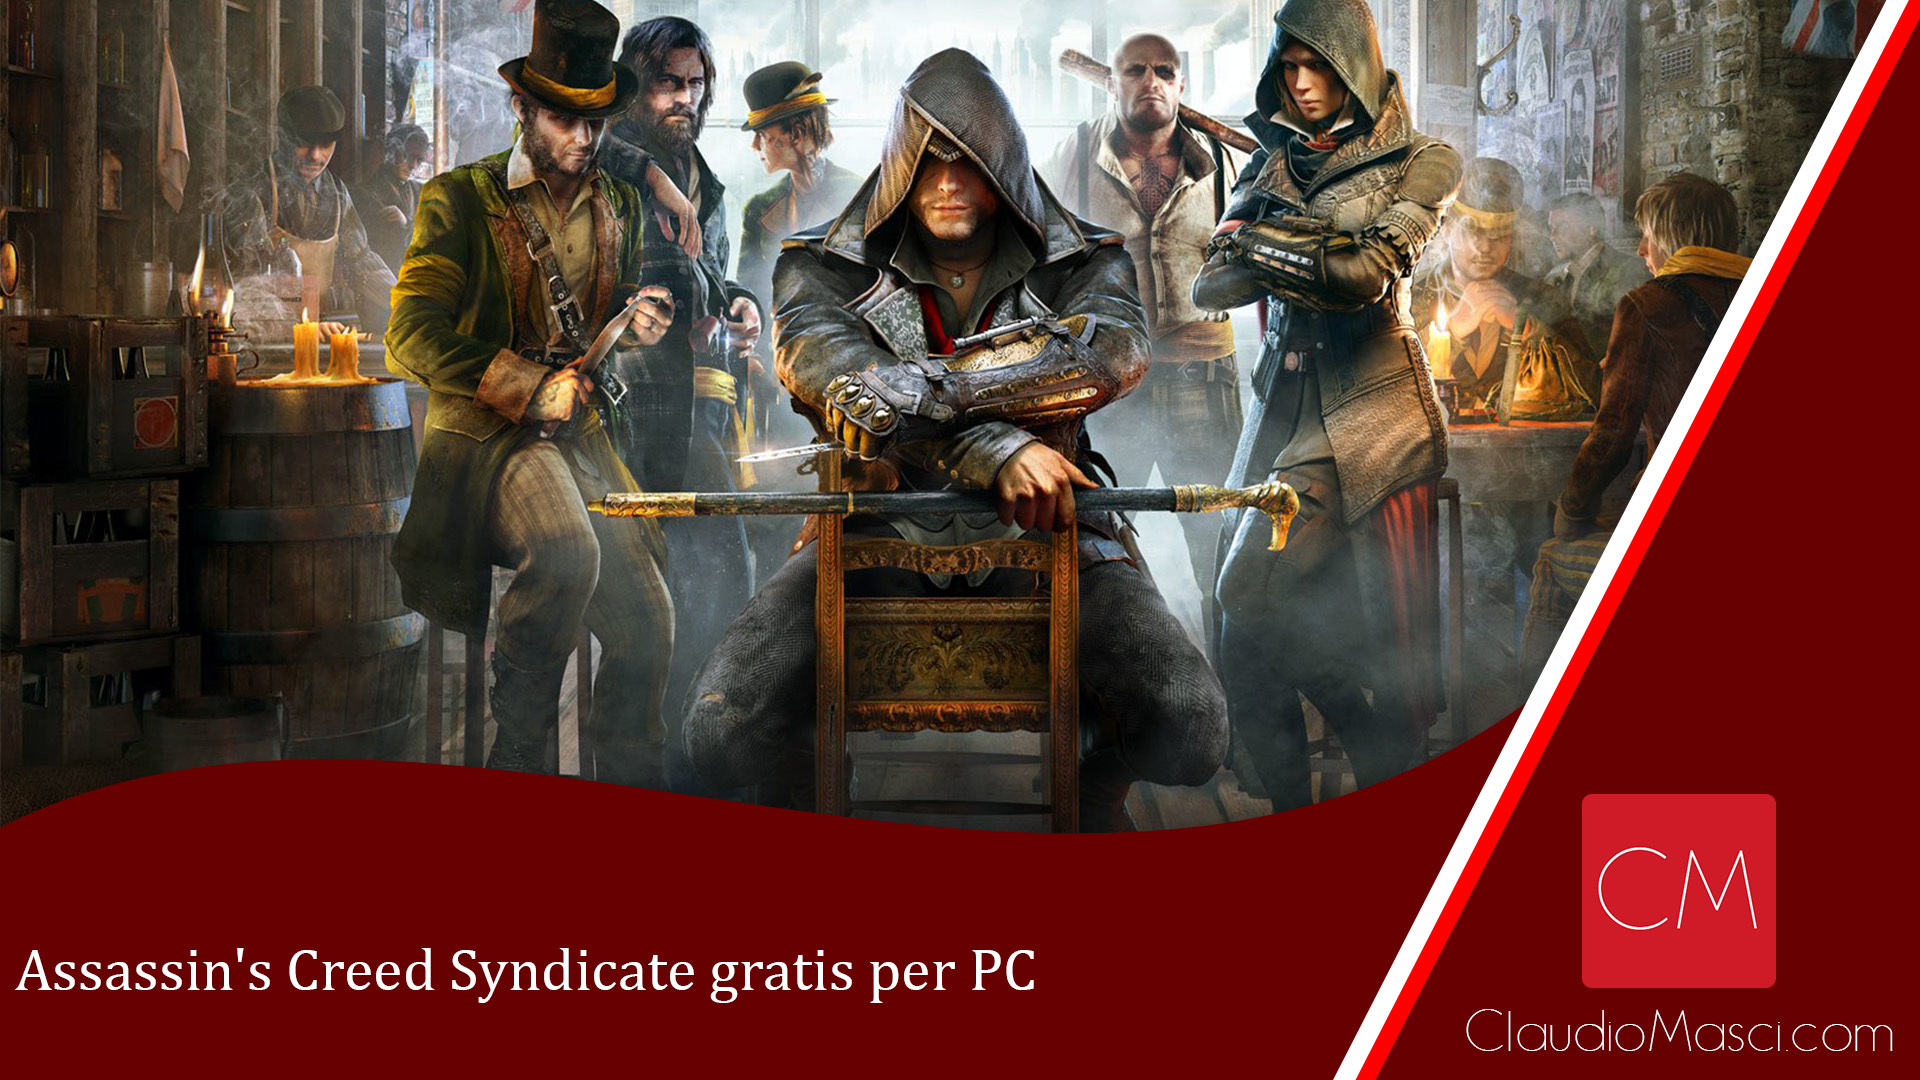 Assassin's Creed Syndicate gratis per PC